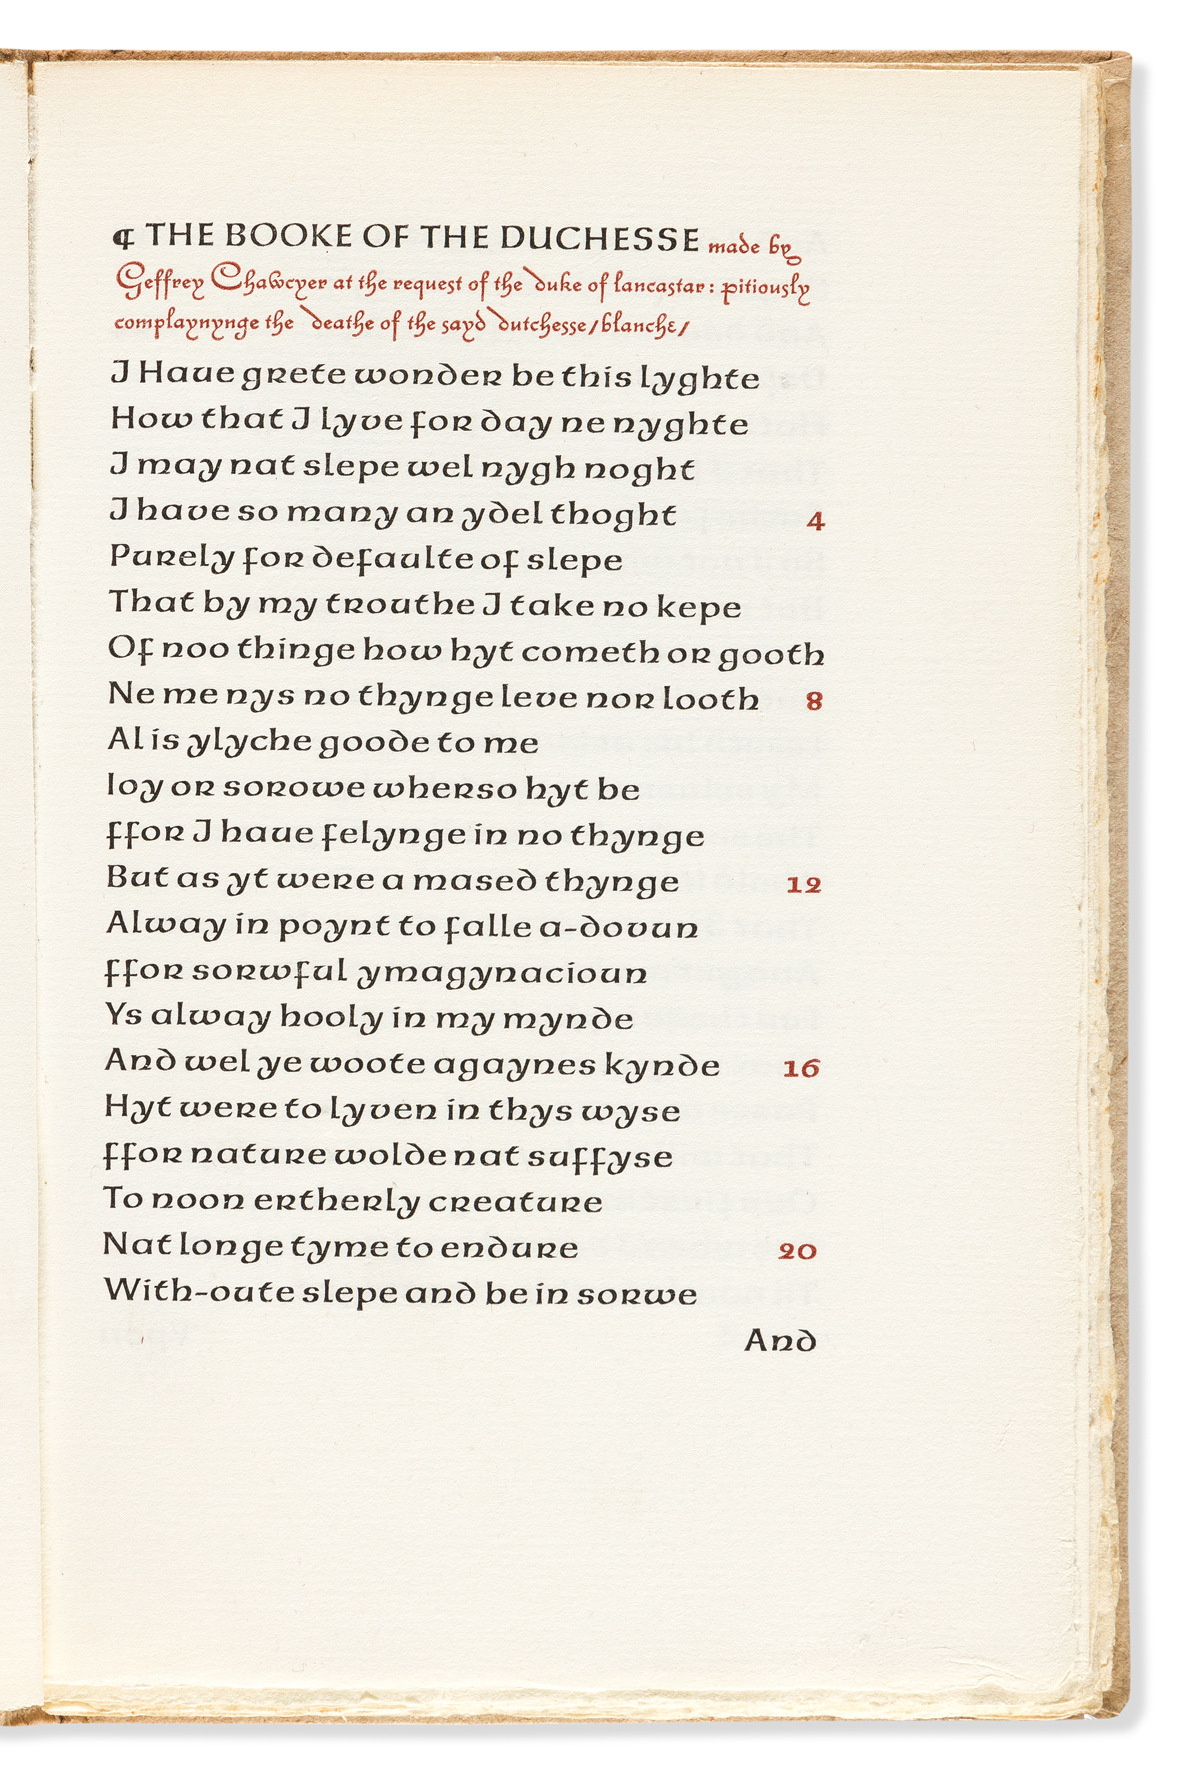 (ANVIL PRESS.) Chaucer, Geoffrey. The Booke of the Duchesse.